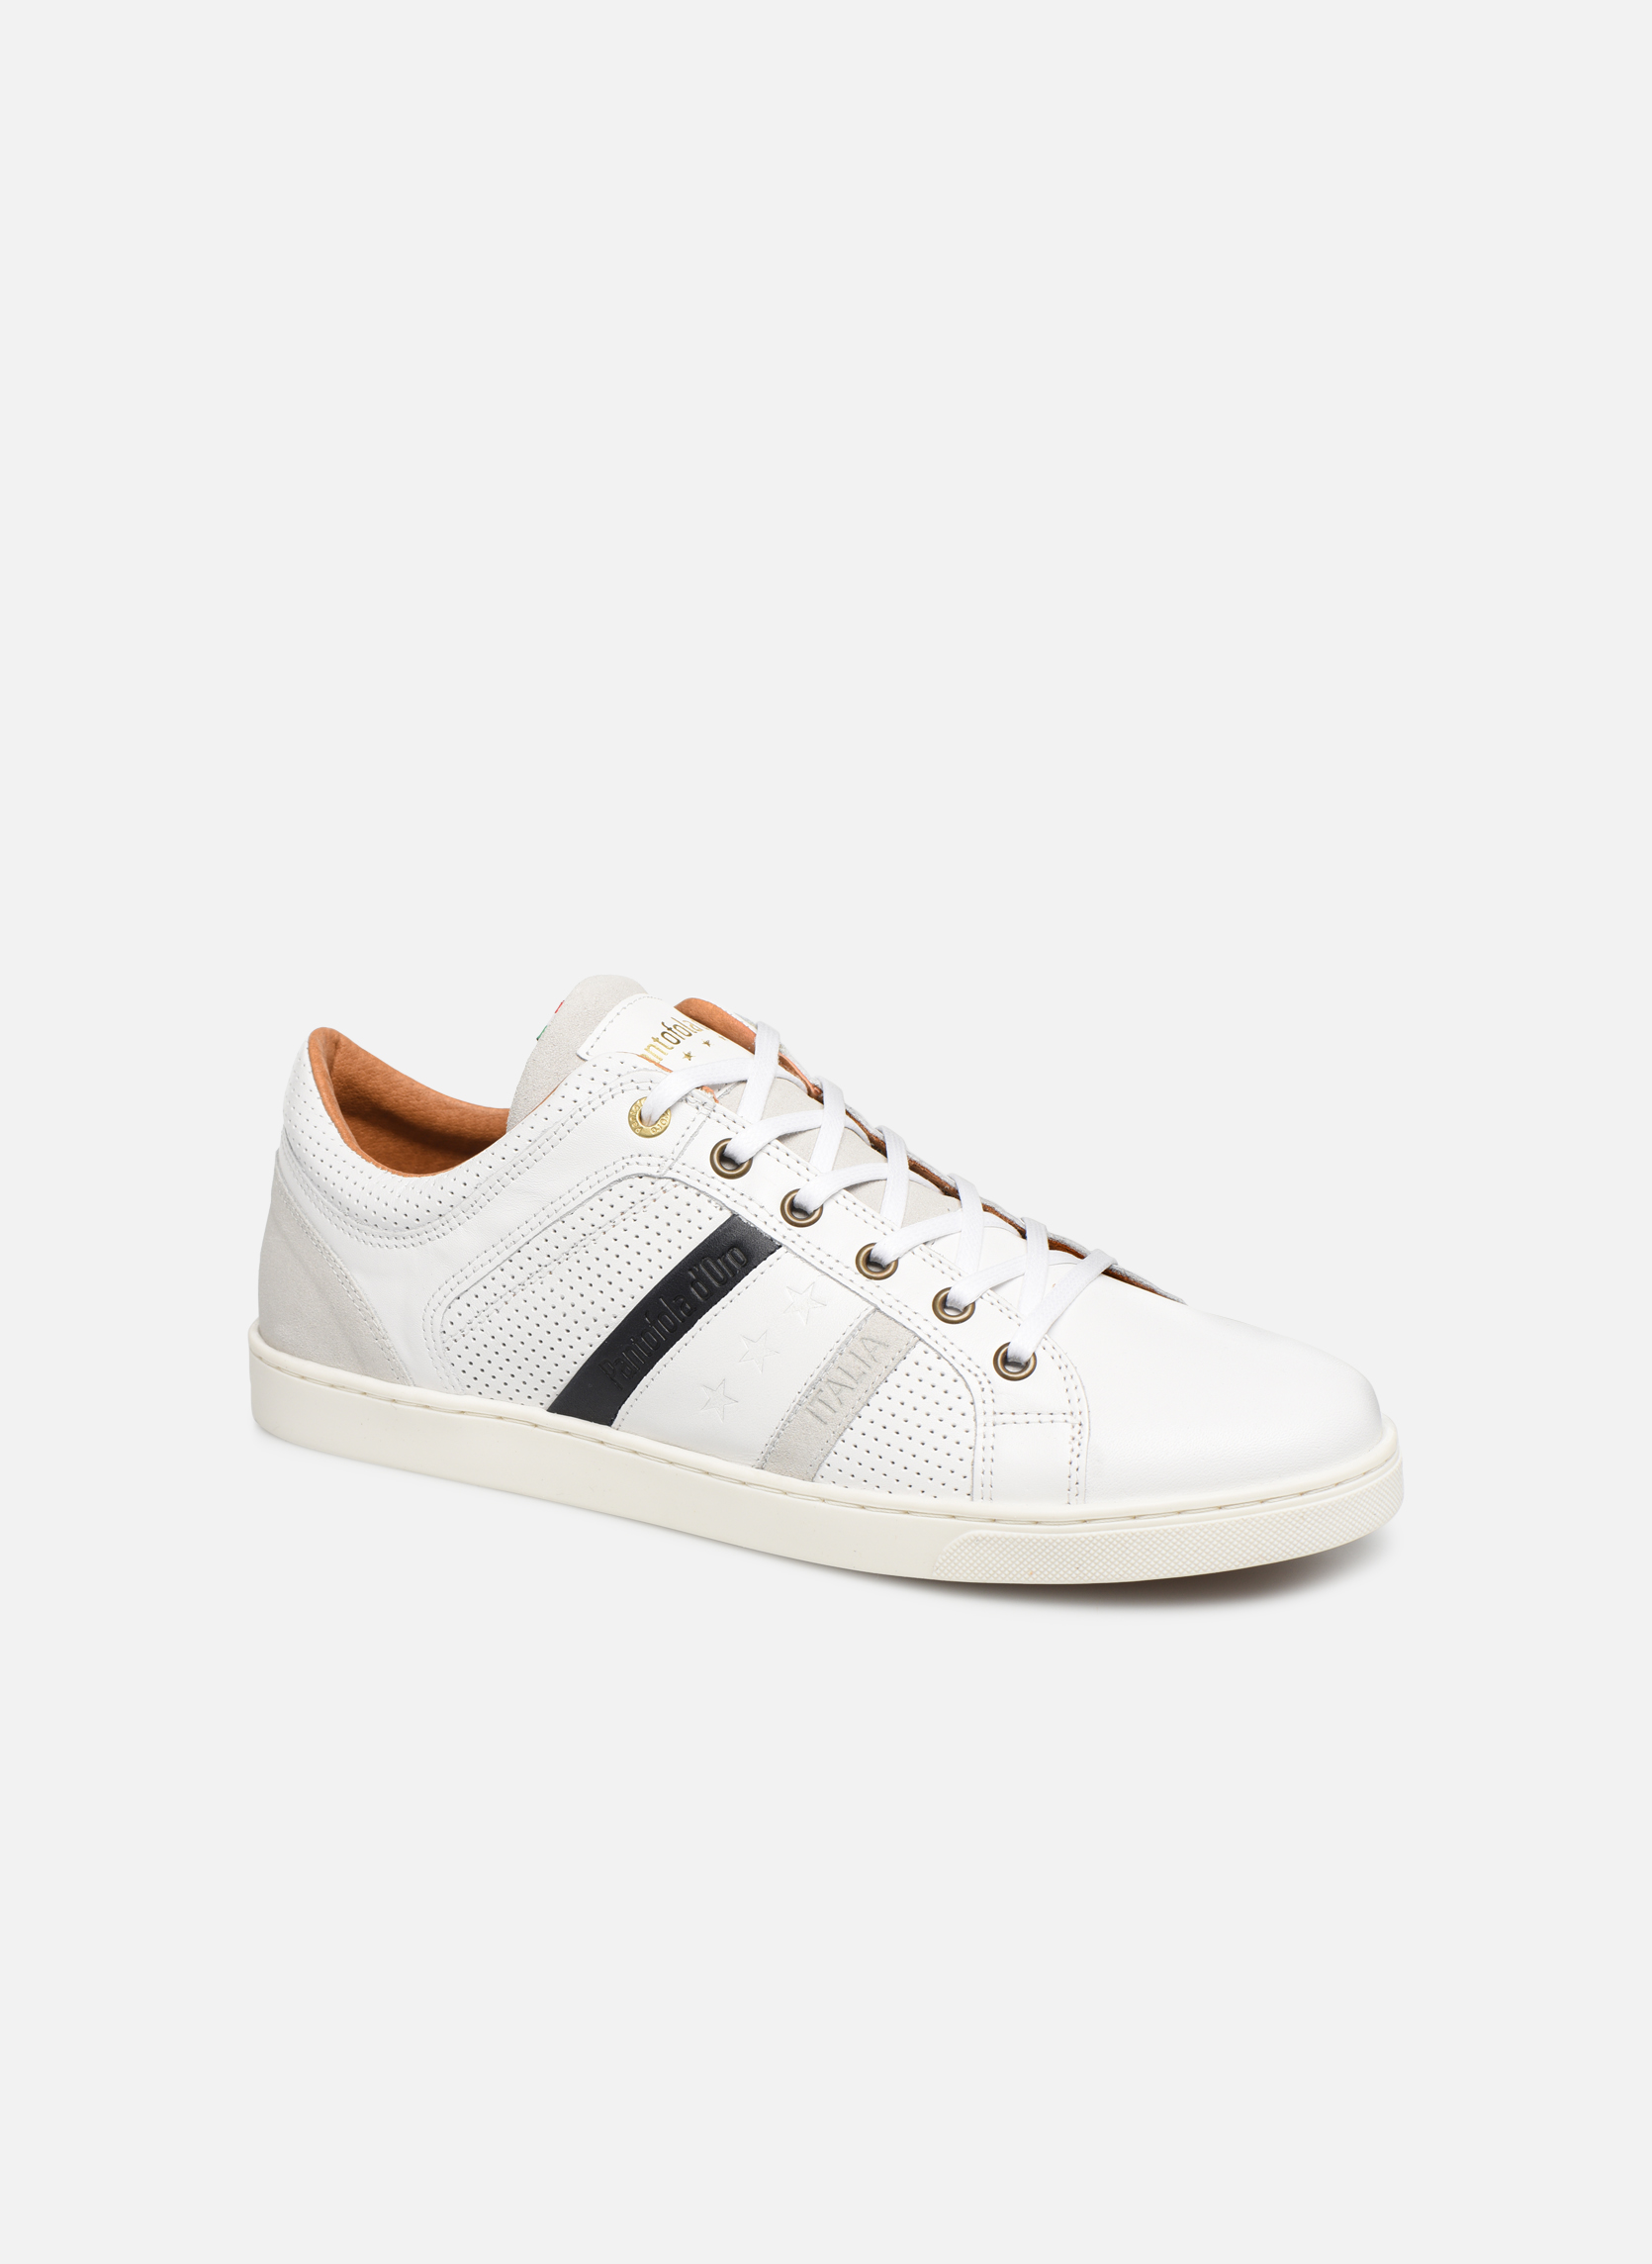 Sneakers Pantofola d'Oro Wit